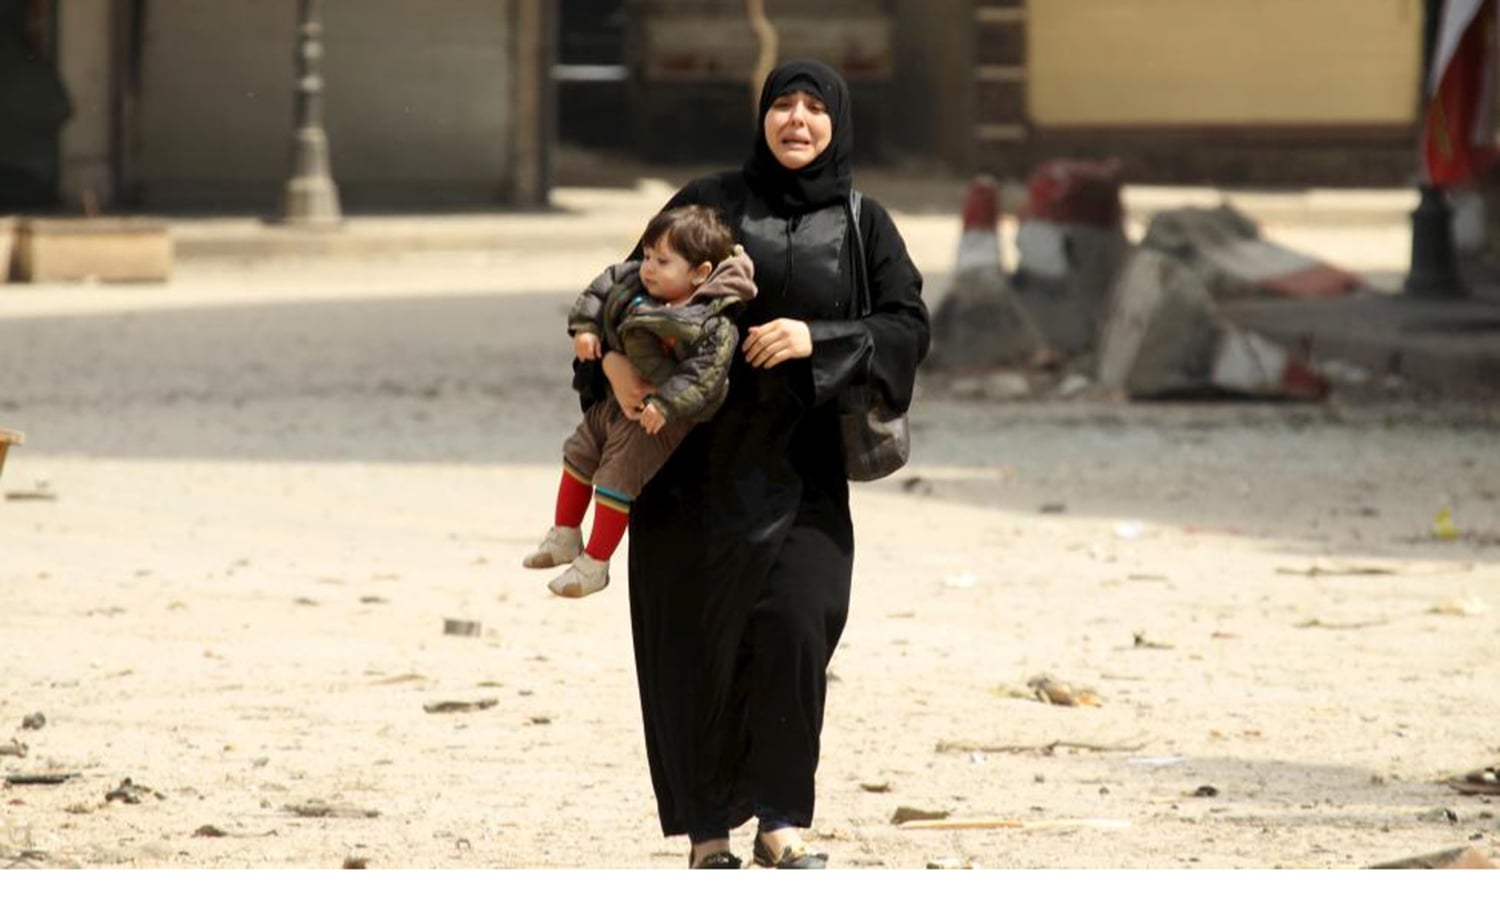 A woman carrying a child reacts at a damaged site after what activists said was shelling by forces loyal to Syria's president Bashar al-Assad on a mosque in Idlib city. — Reuters